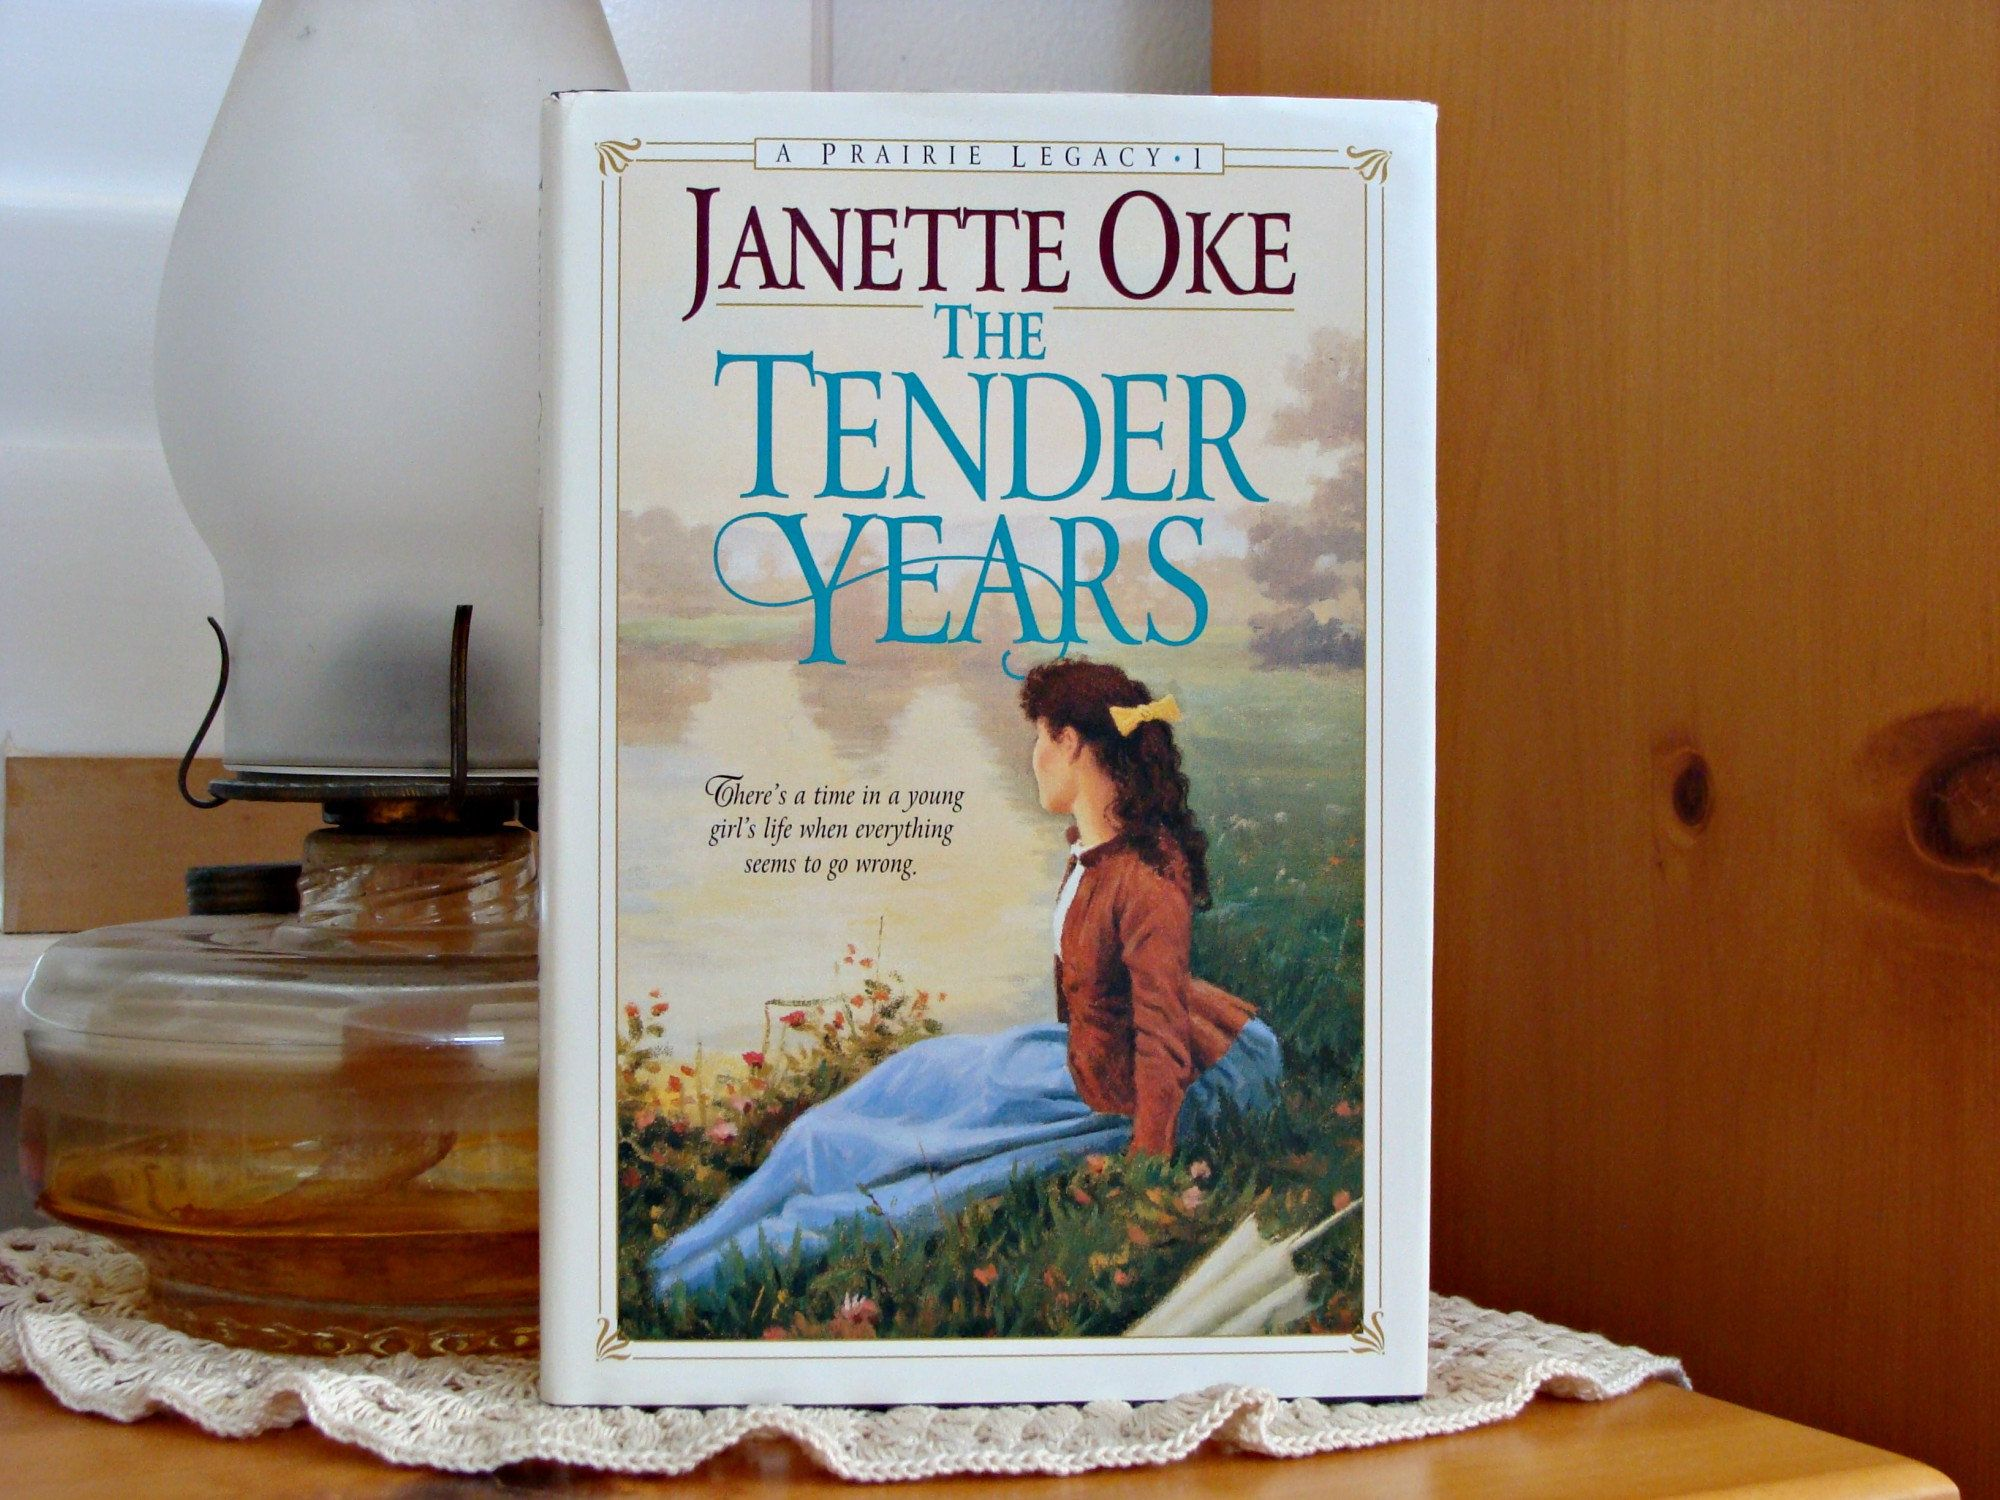 1997 The Tender Years Janette Oke Book 1 Prairie Etsy In 2020 Janette Oke Books Janette Oke Book 1